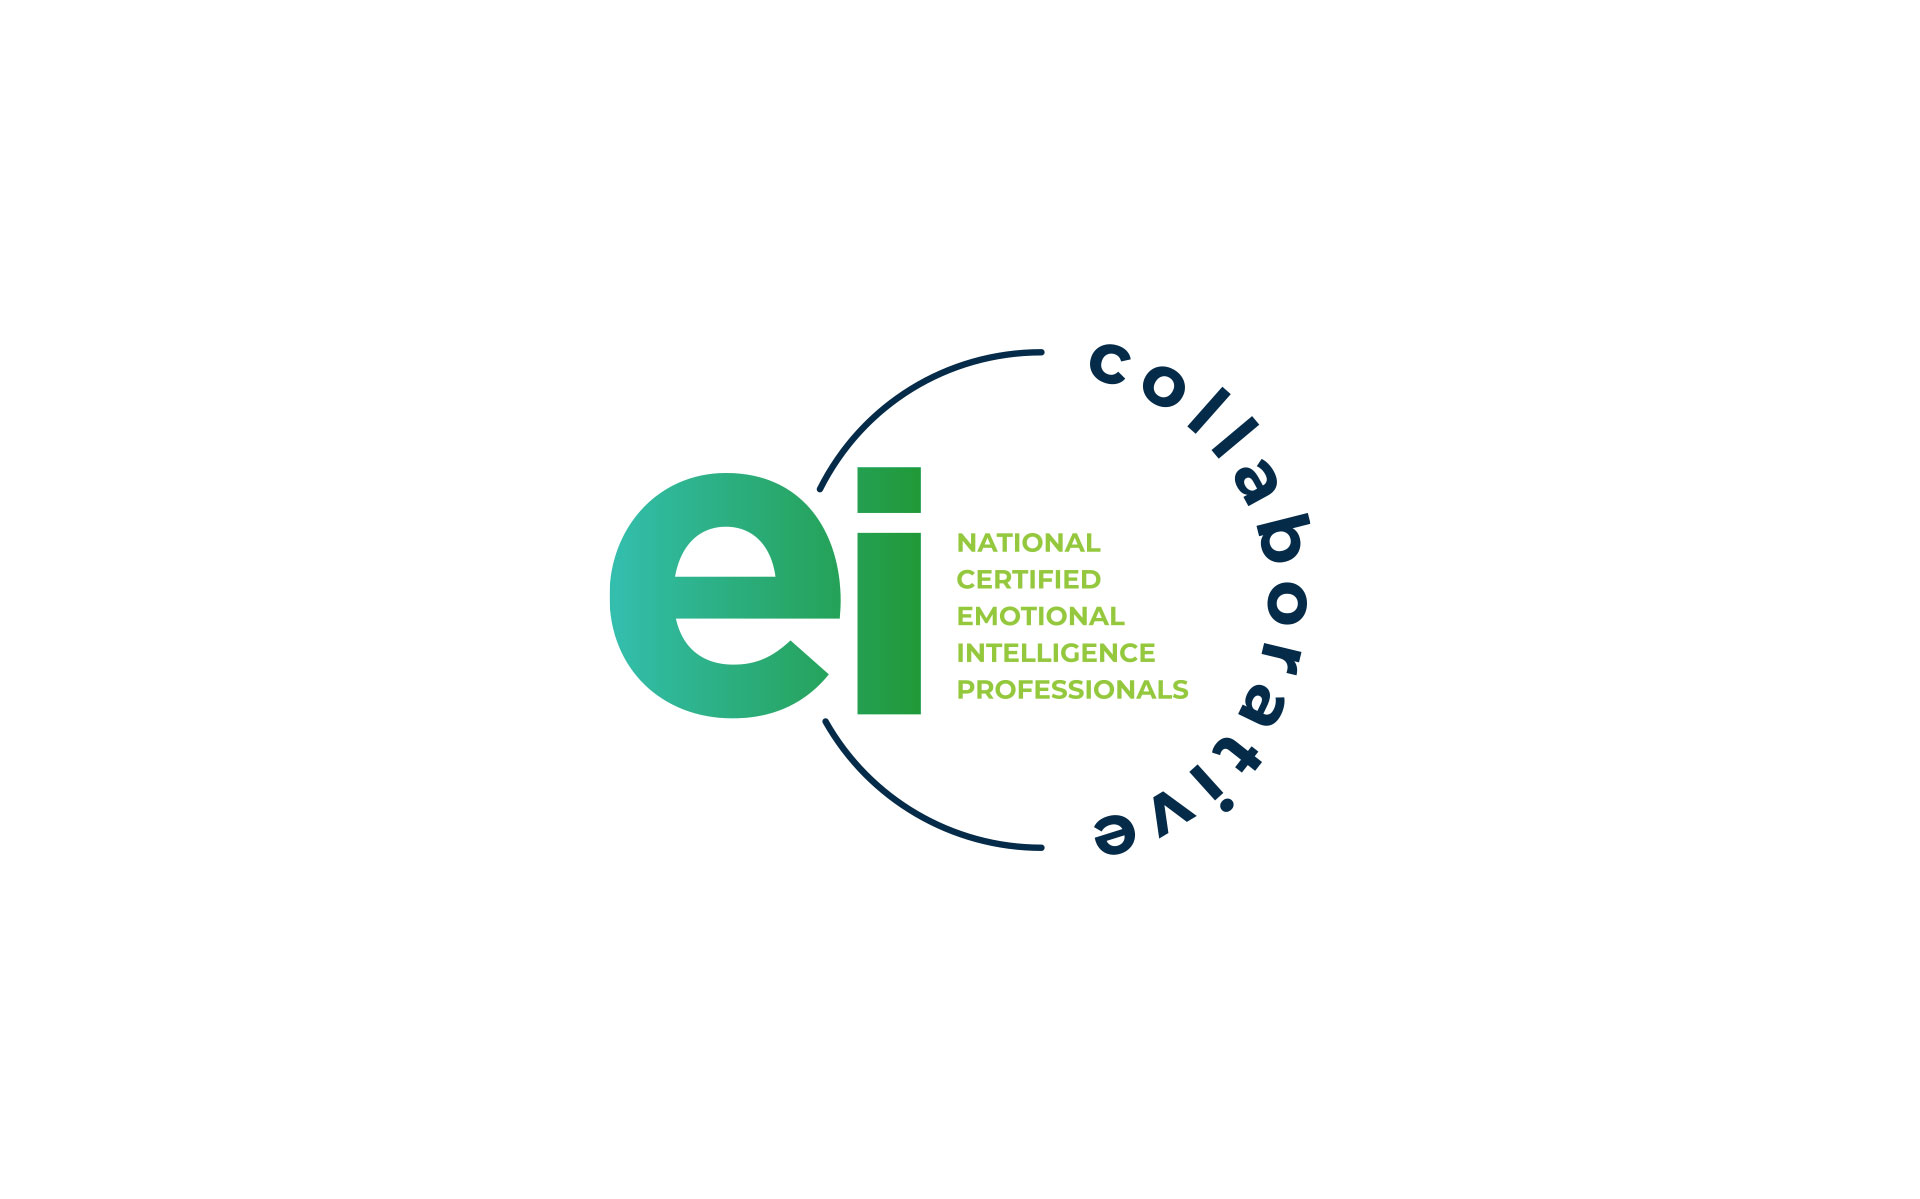 EI Collaborative logo & branding designed by Amy at Yellow Sunday